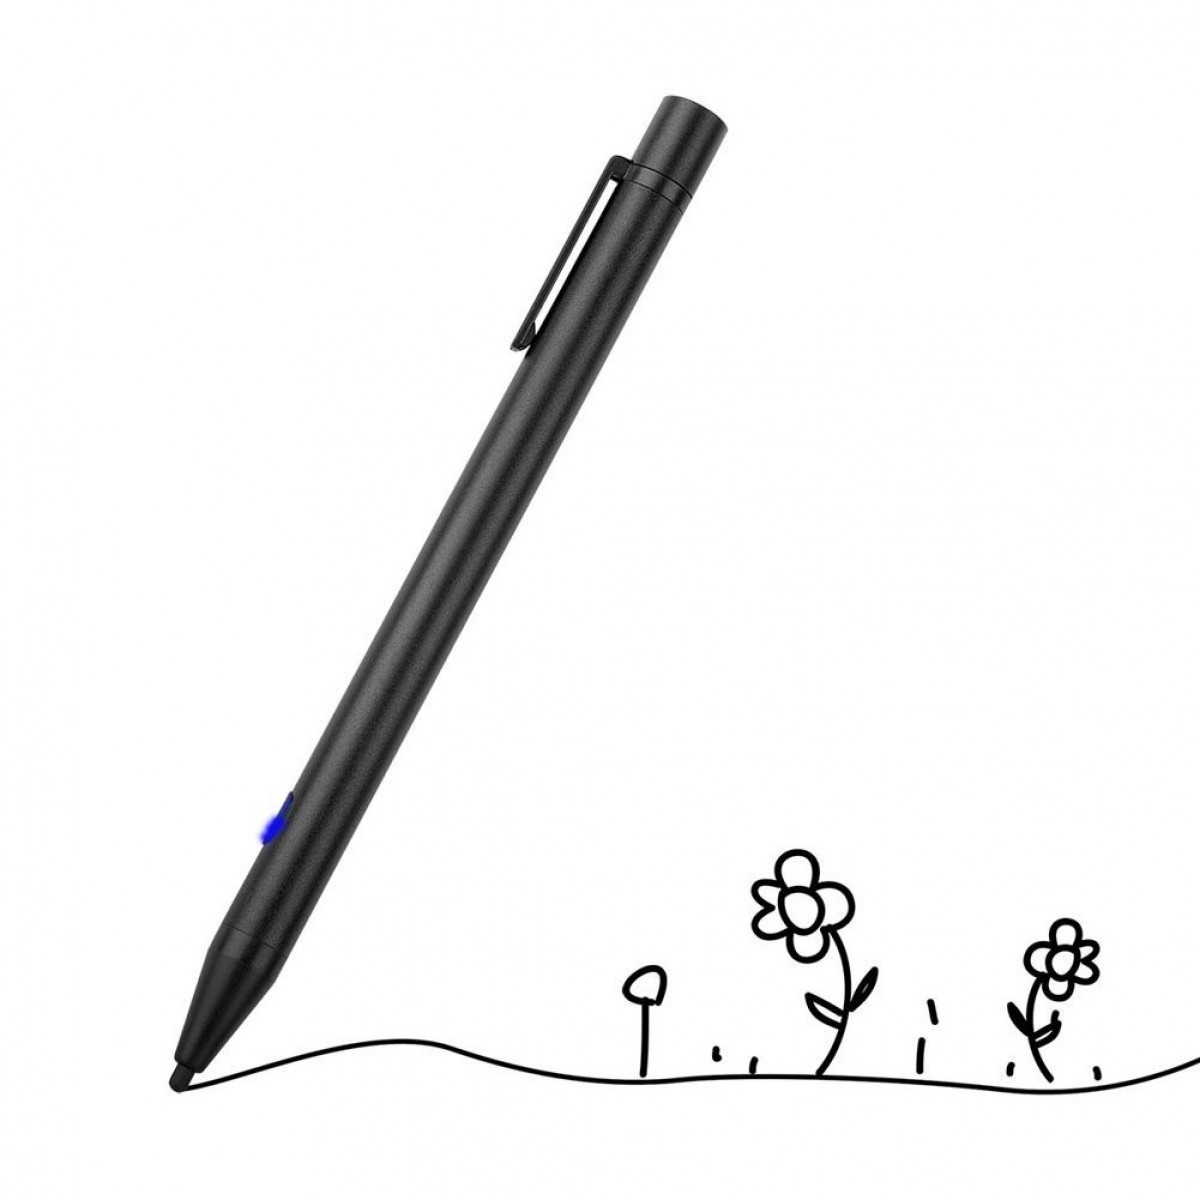 Salute Stylus Pen Active Touch Screen Capacitive Drawing